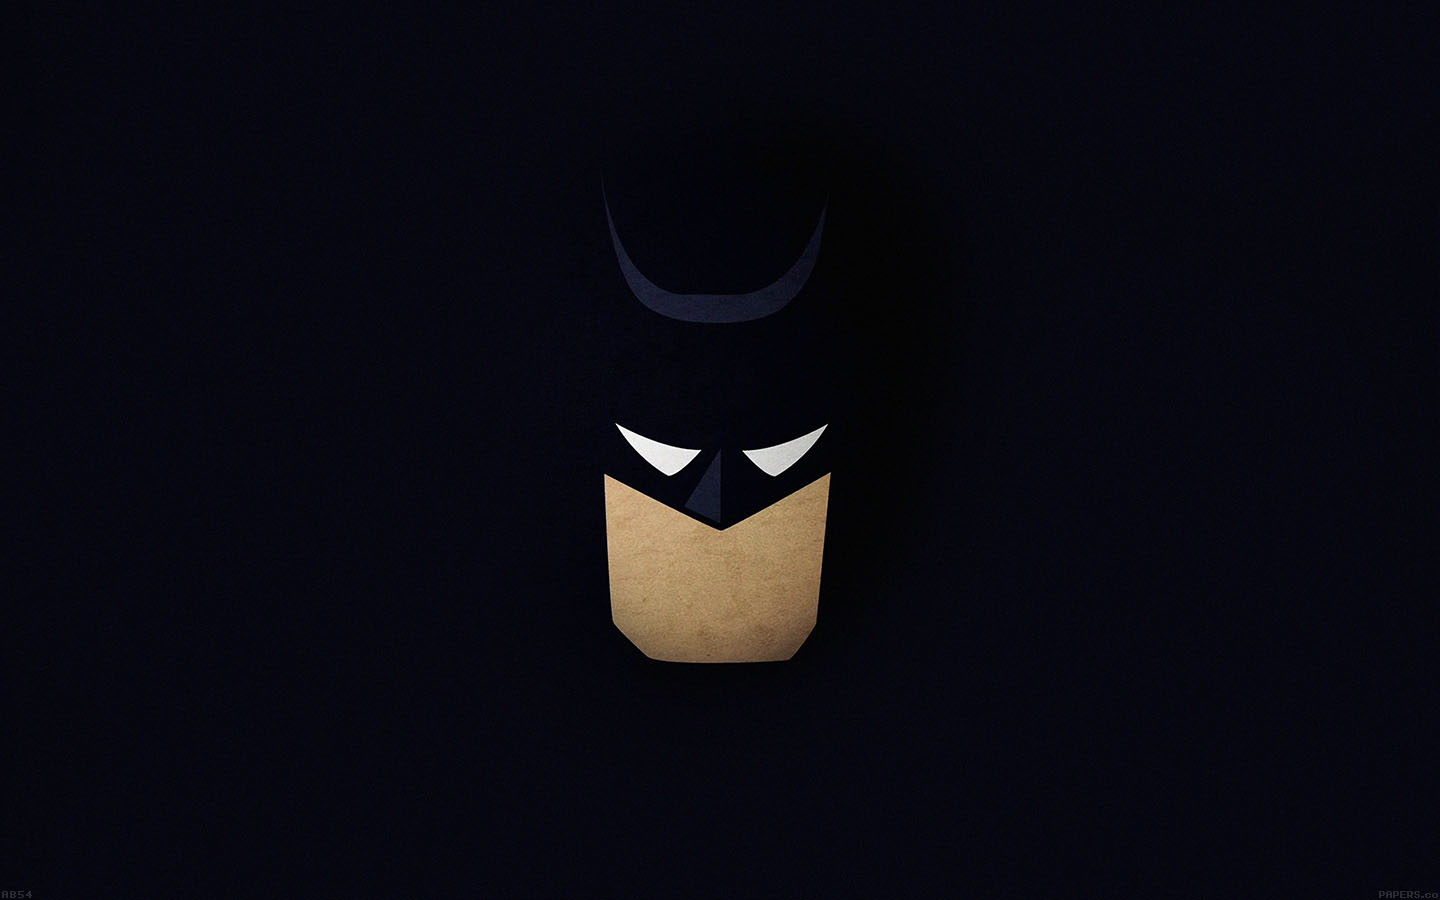 ab54-wallpaper-batman-face-dark-minimal - Papers.co